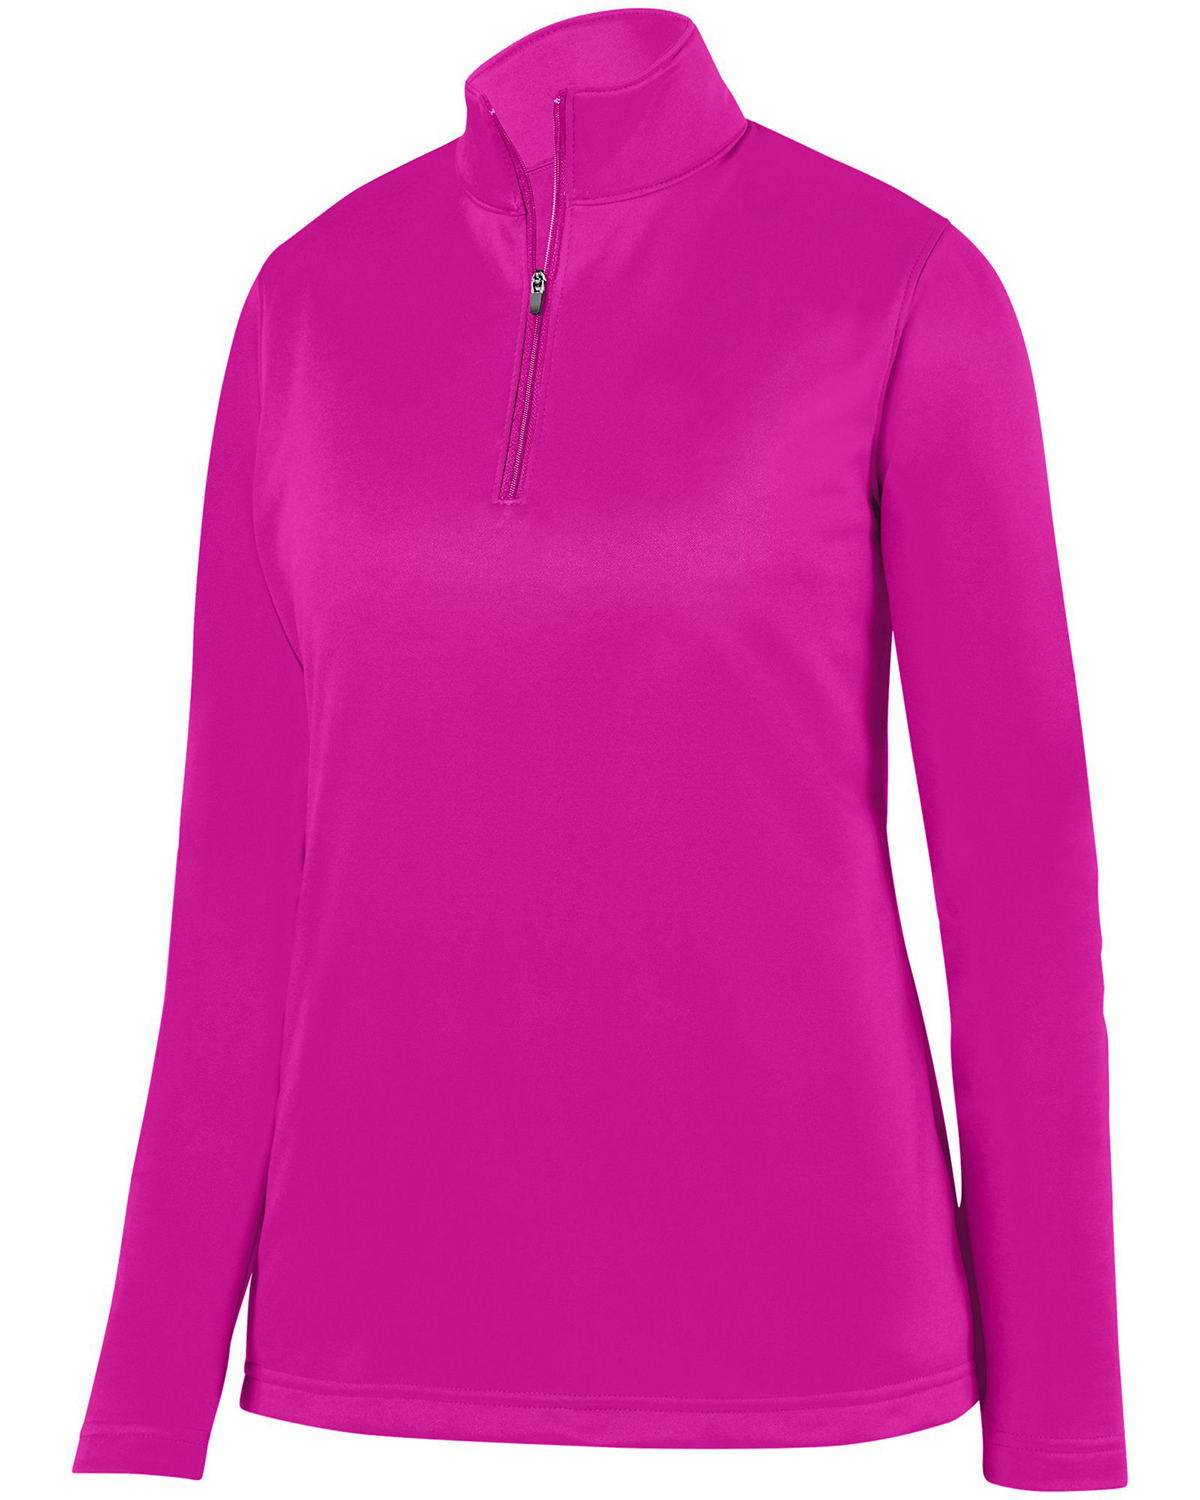 Augusta Drop Ship AG5509 - Ladies Wicking Fleece Quarter-...